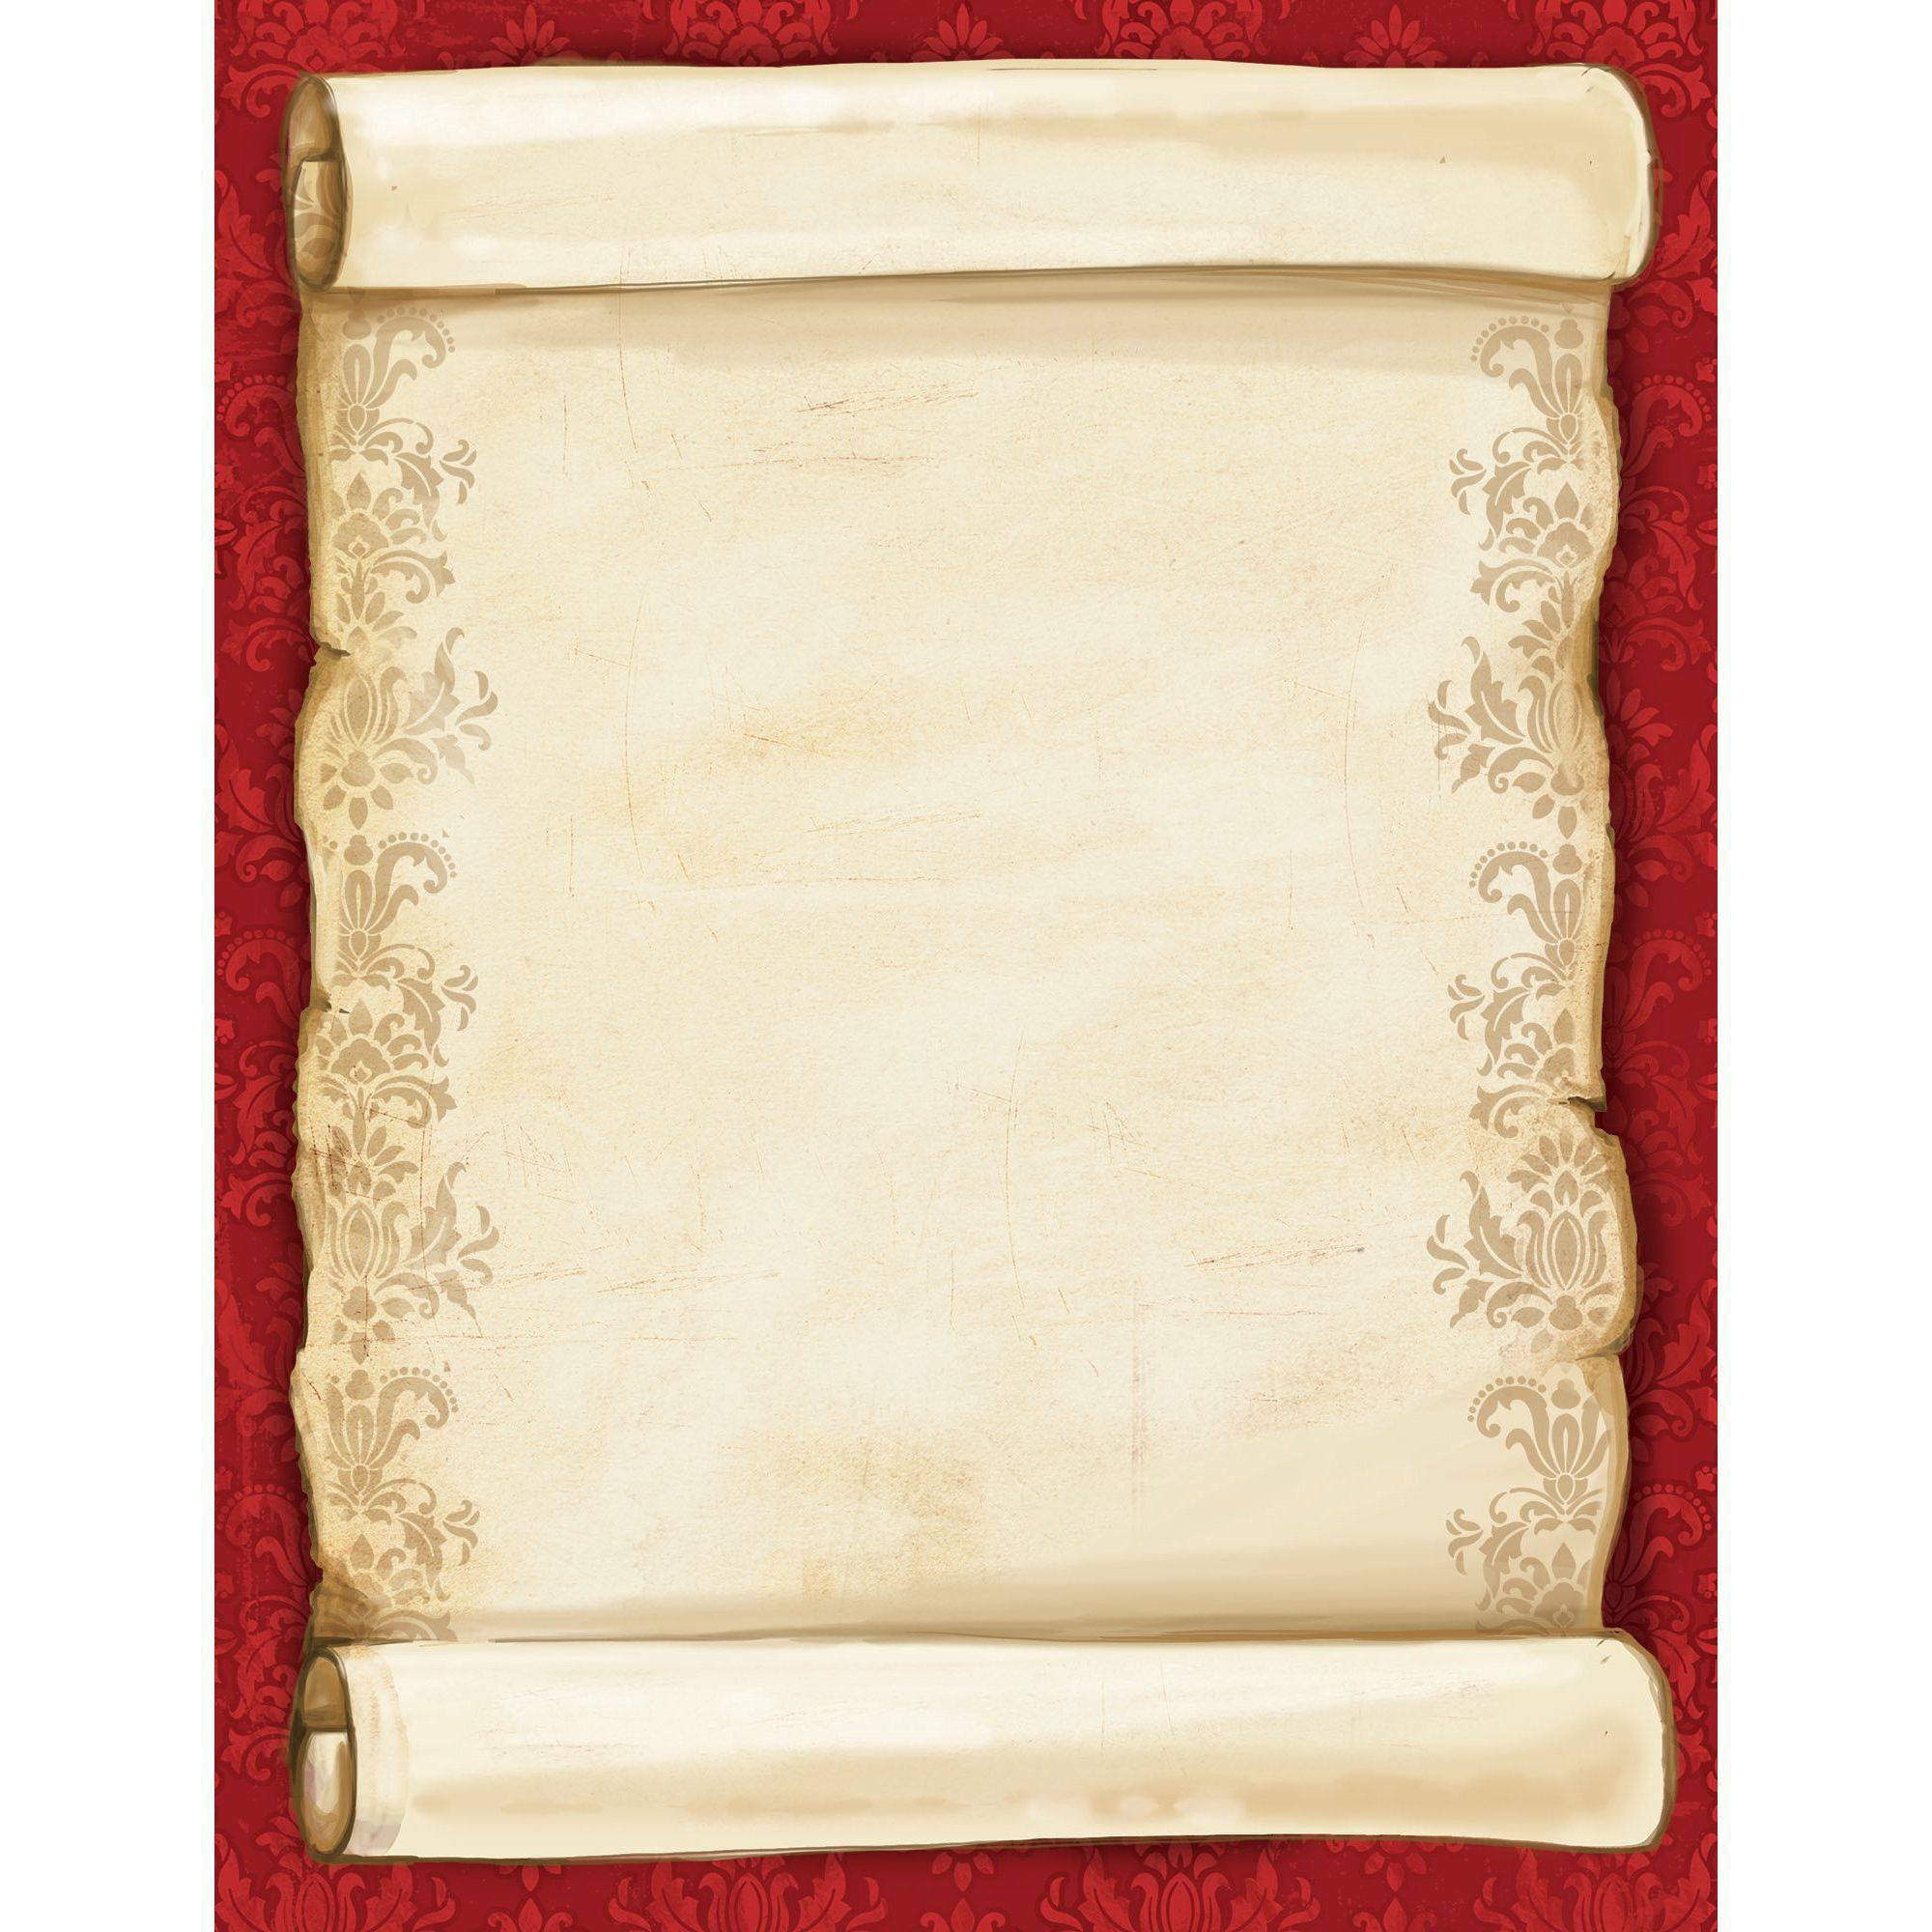 Great Papers Christmas Scroll Letterhead 80 count Walmartcom